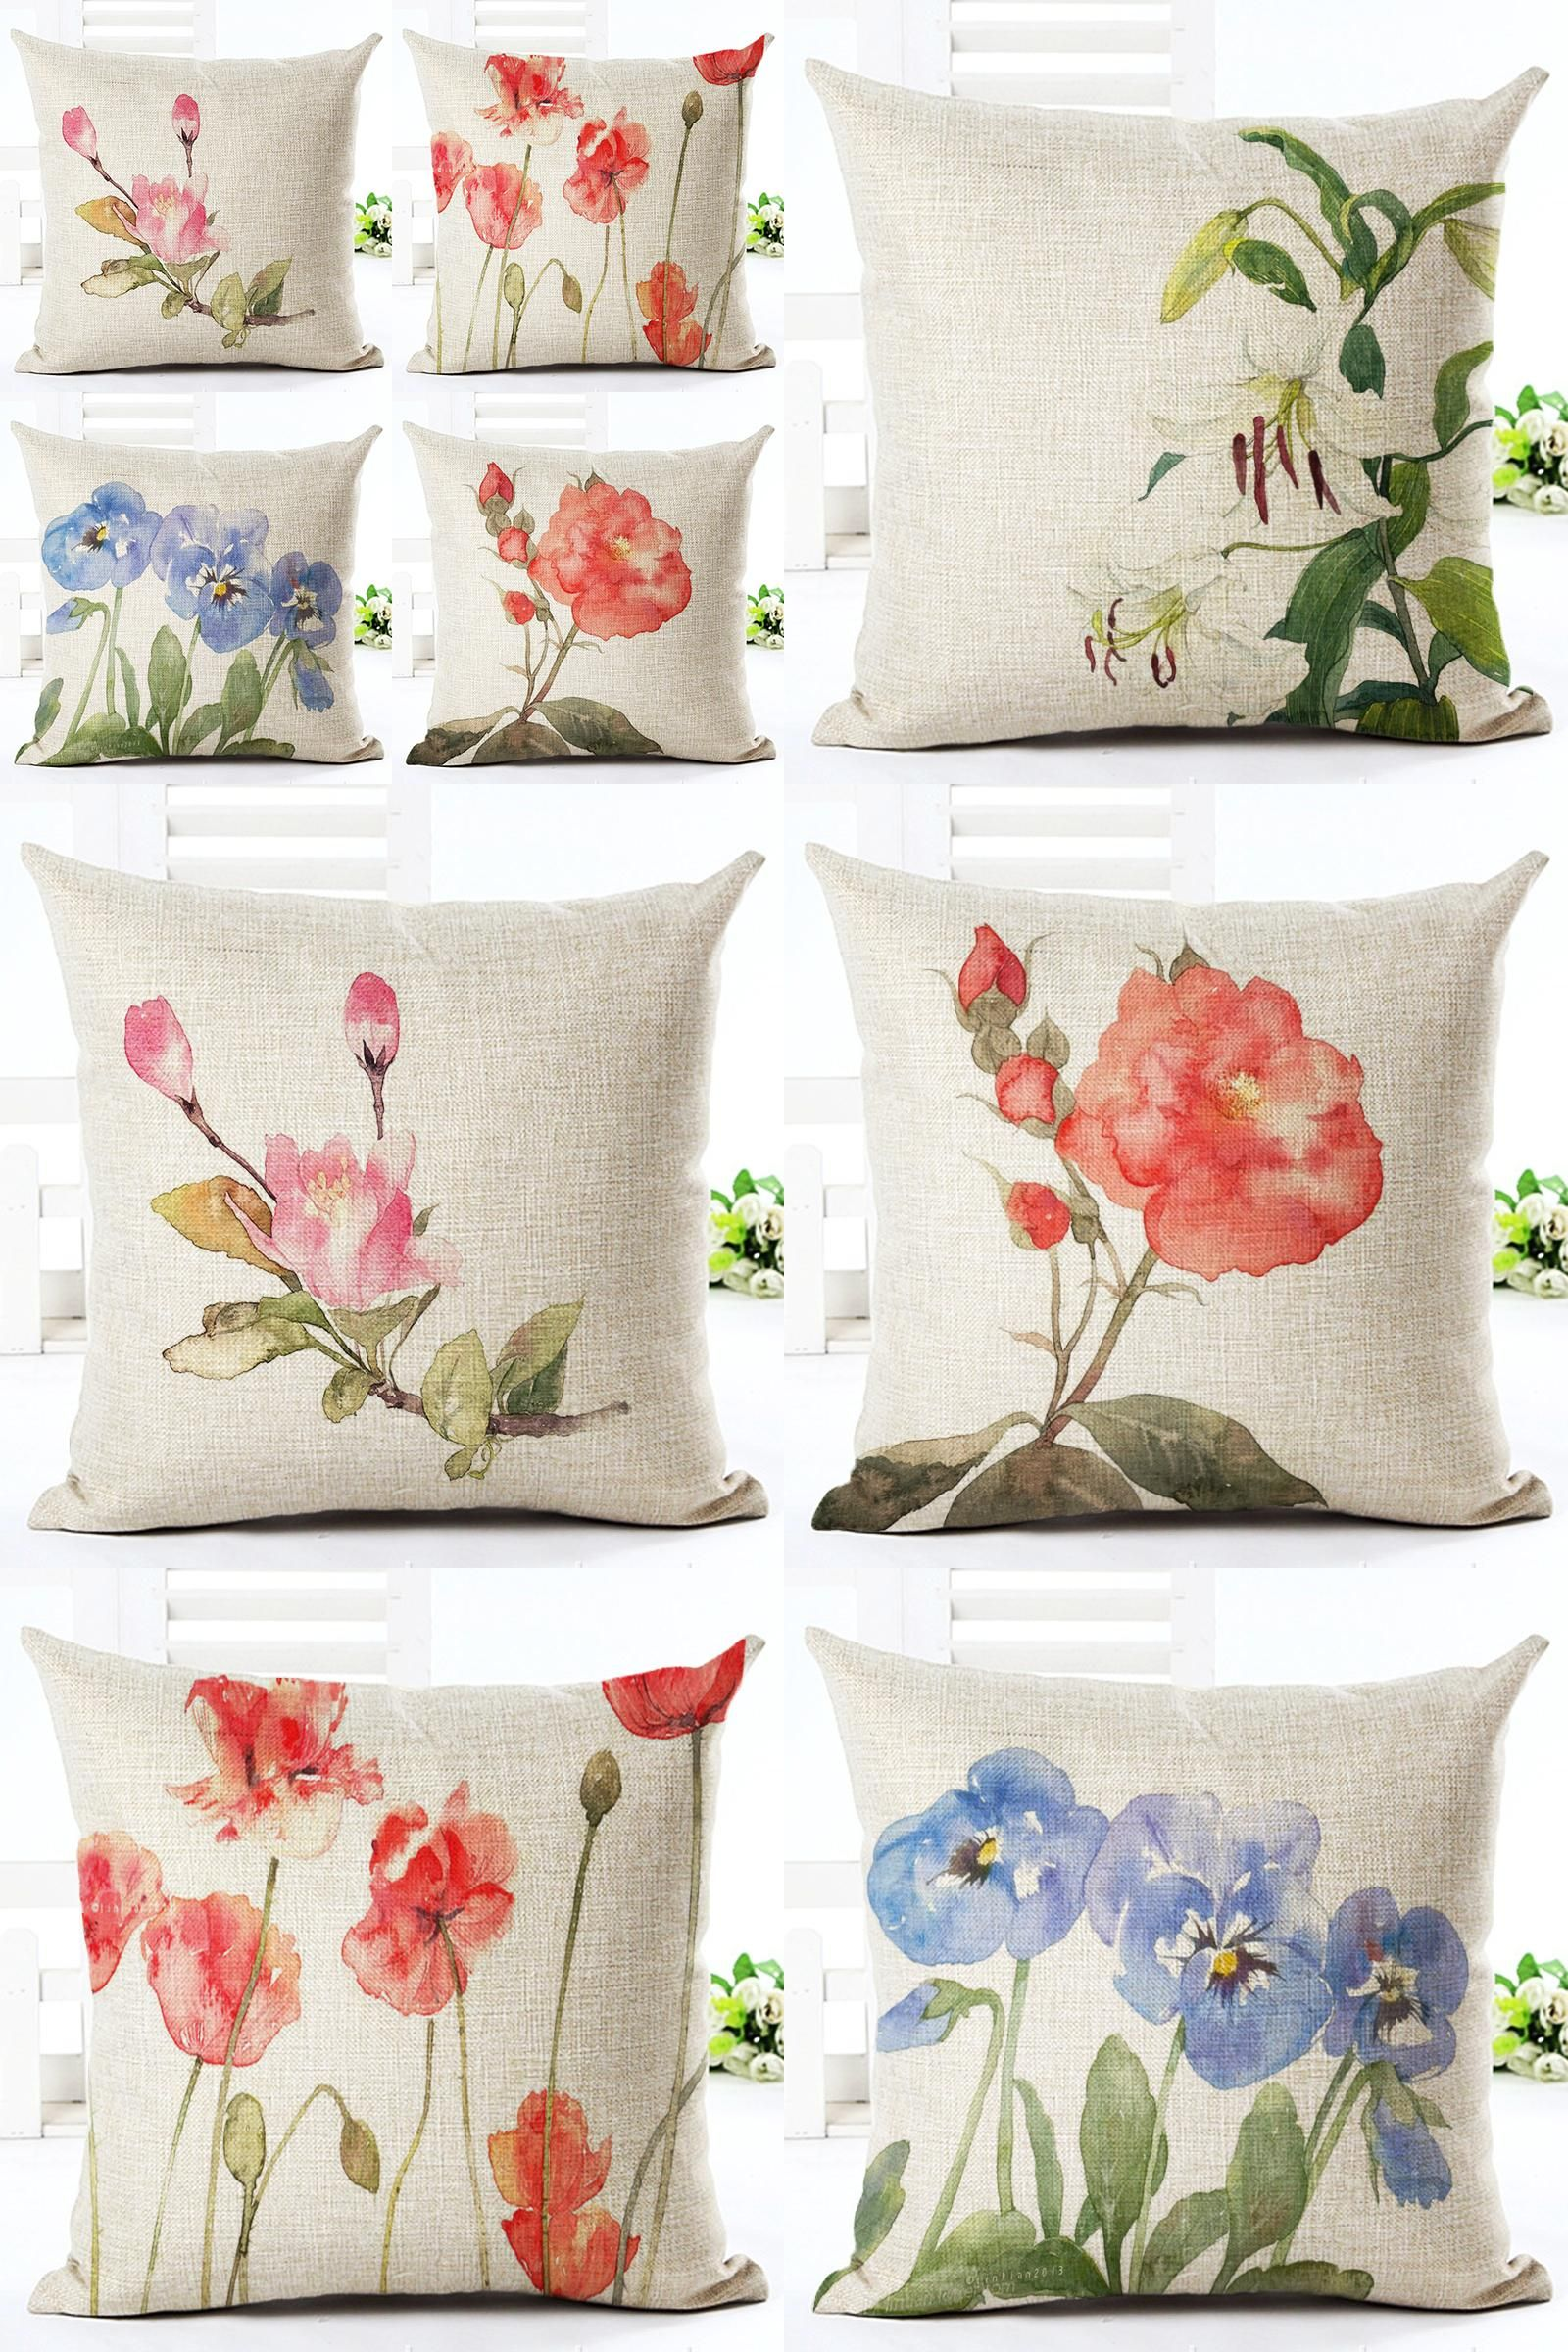 4pcs home decoration throw pillow cover cushion covers tea time US SELLER